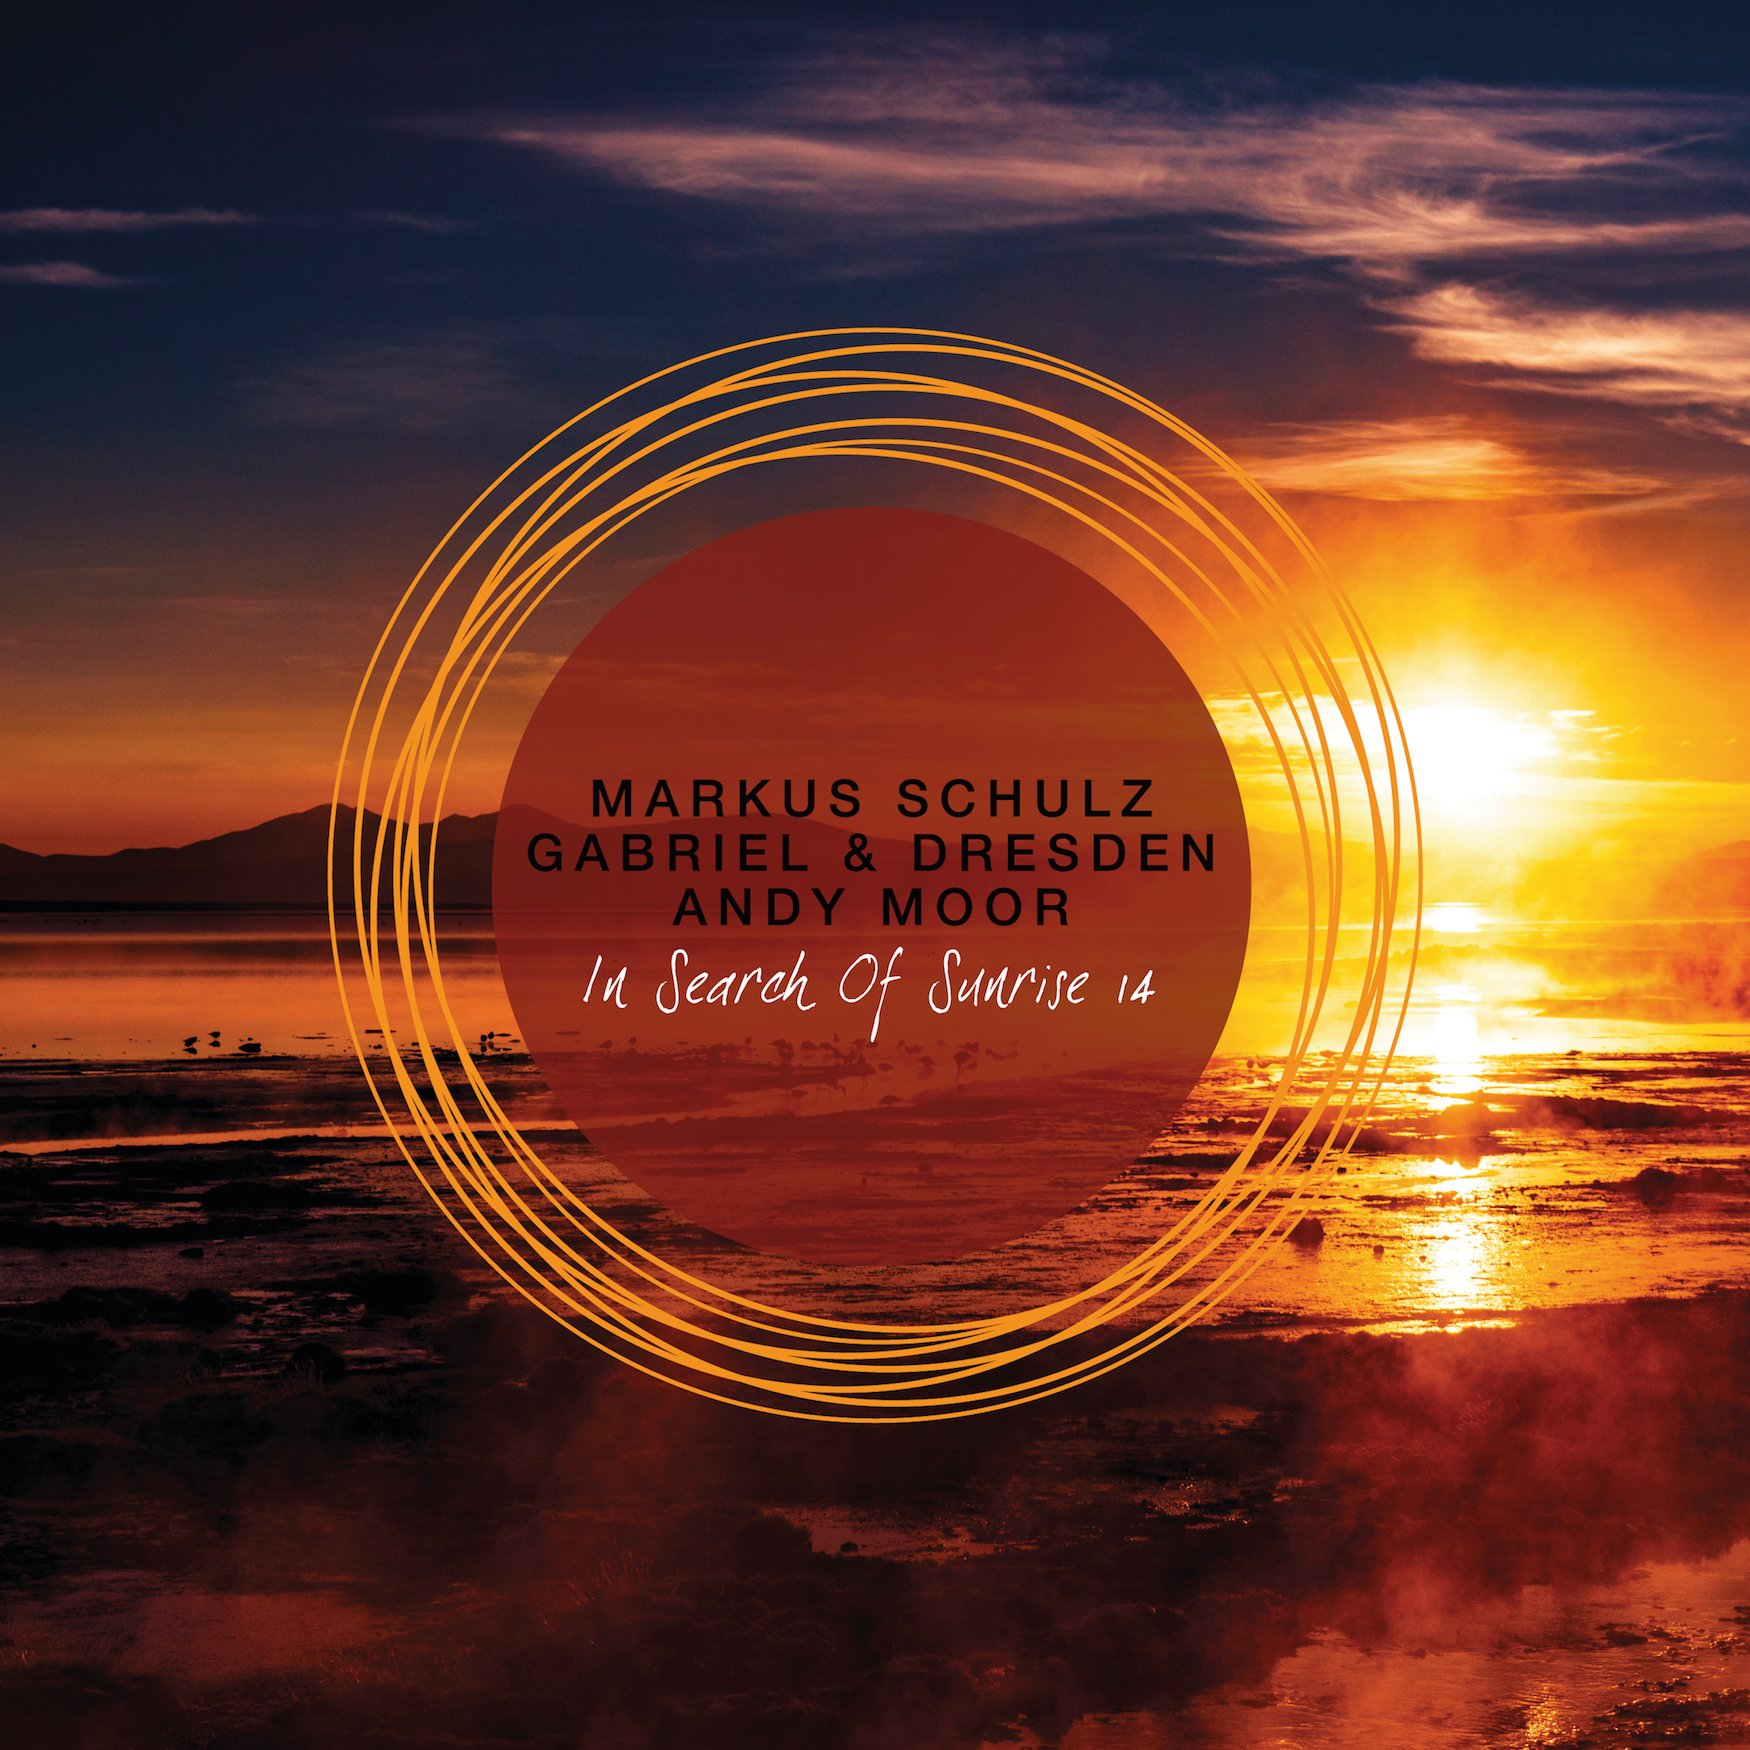 VA – In Search Of Sunrise 14  Markus Schulz, Gabriel Dresden, Andy Moor (2018) [FLAC]